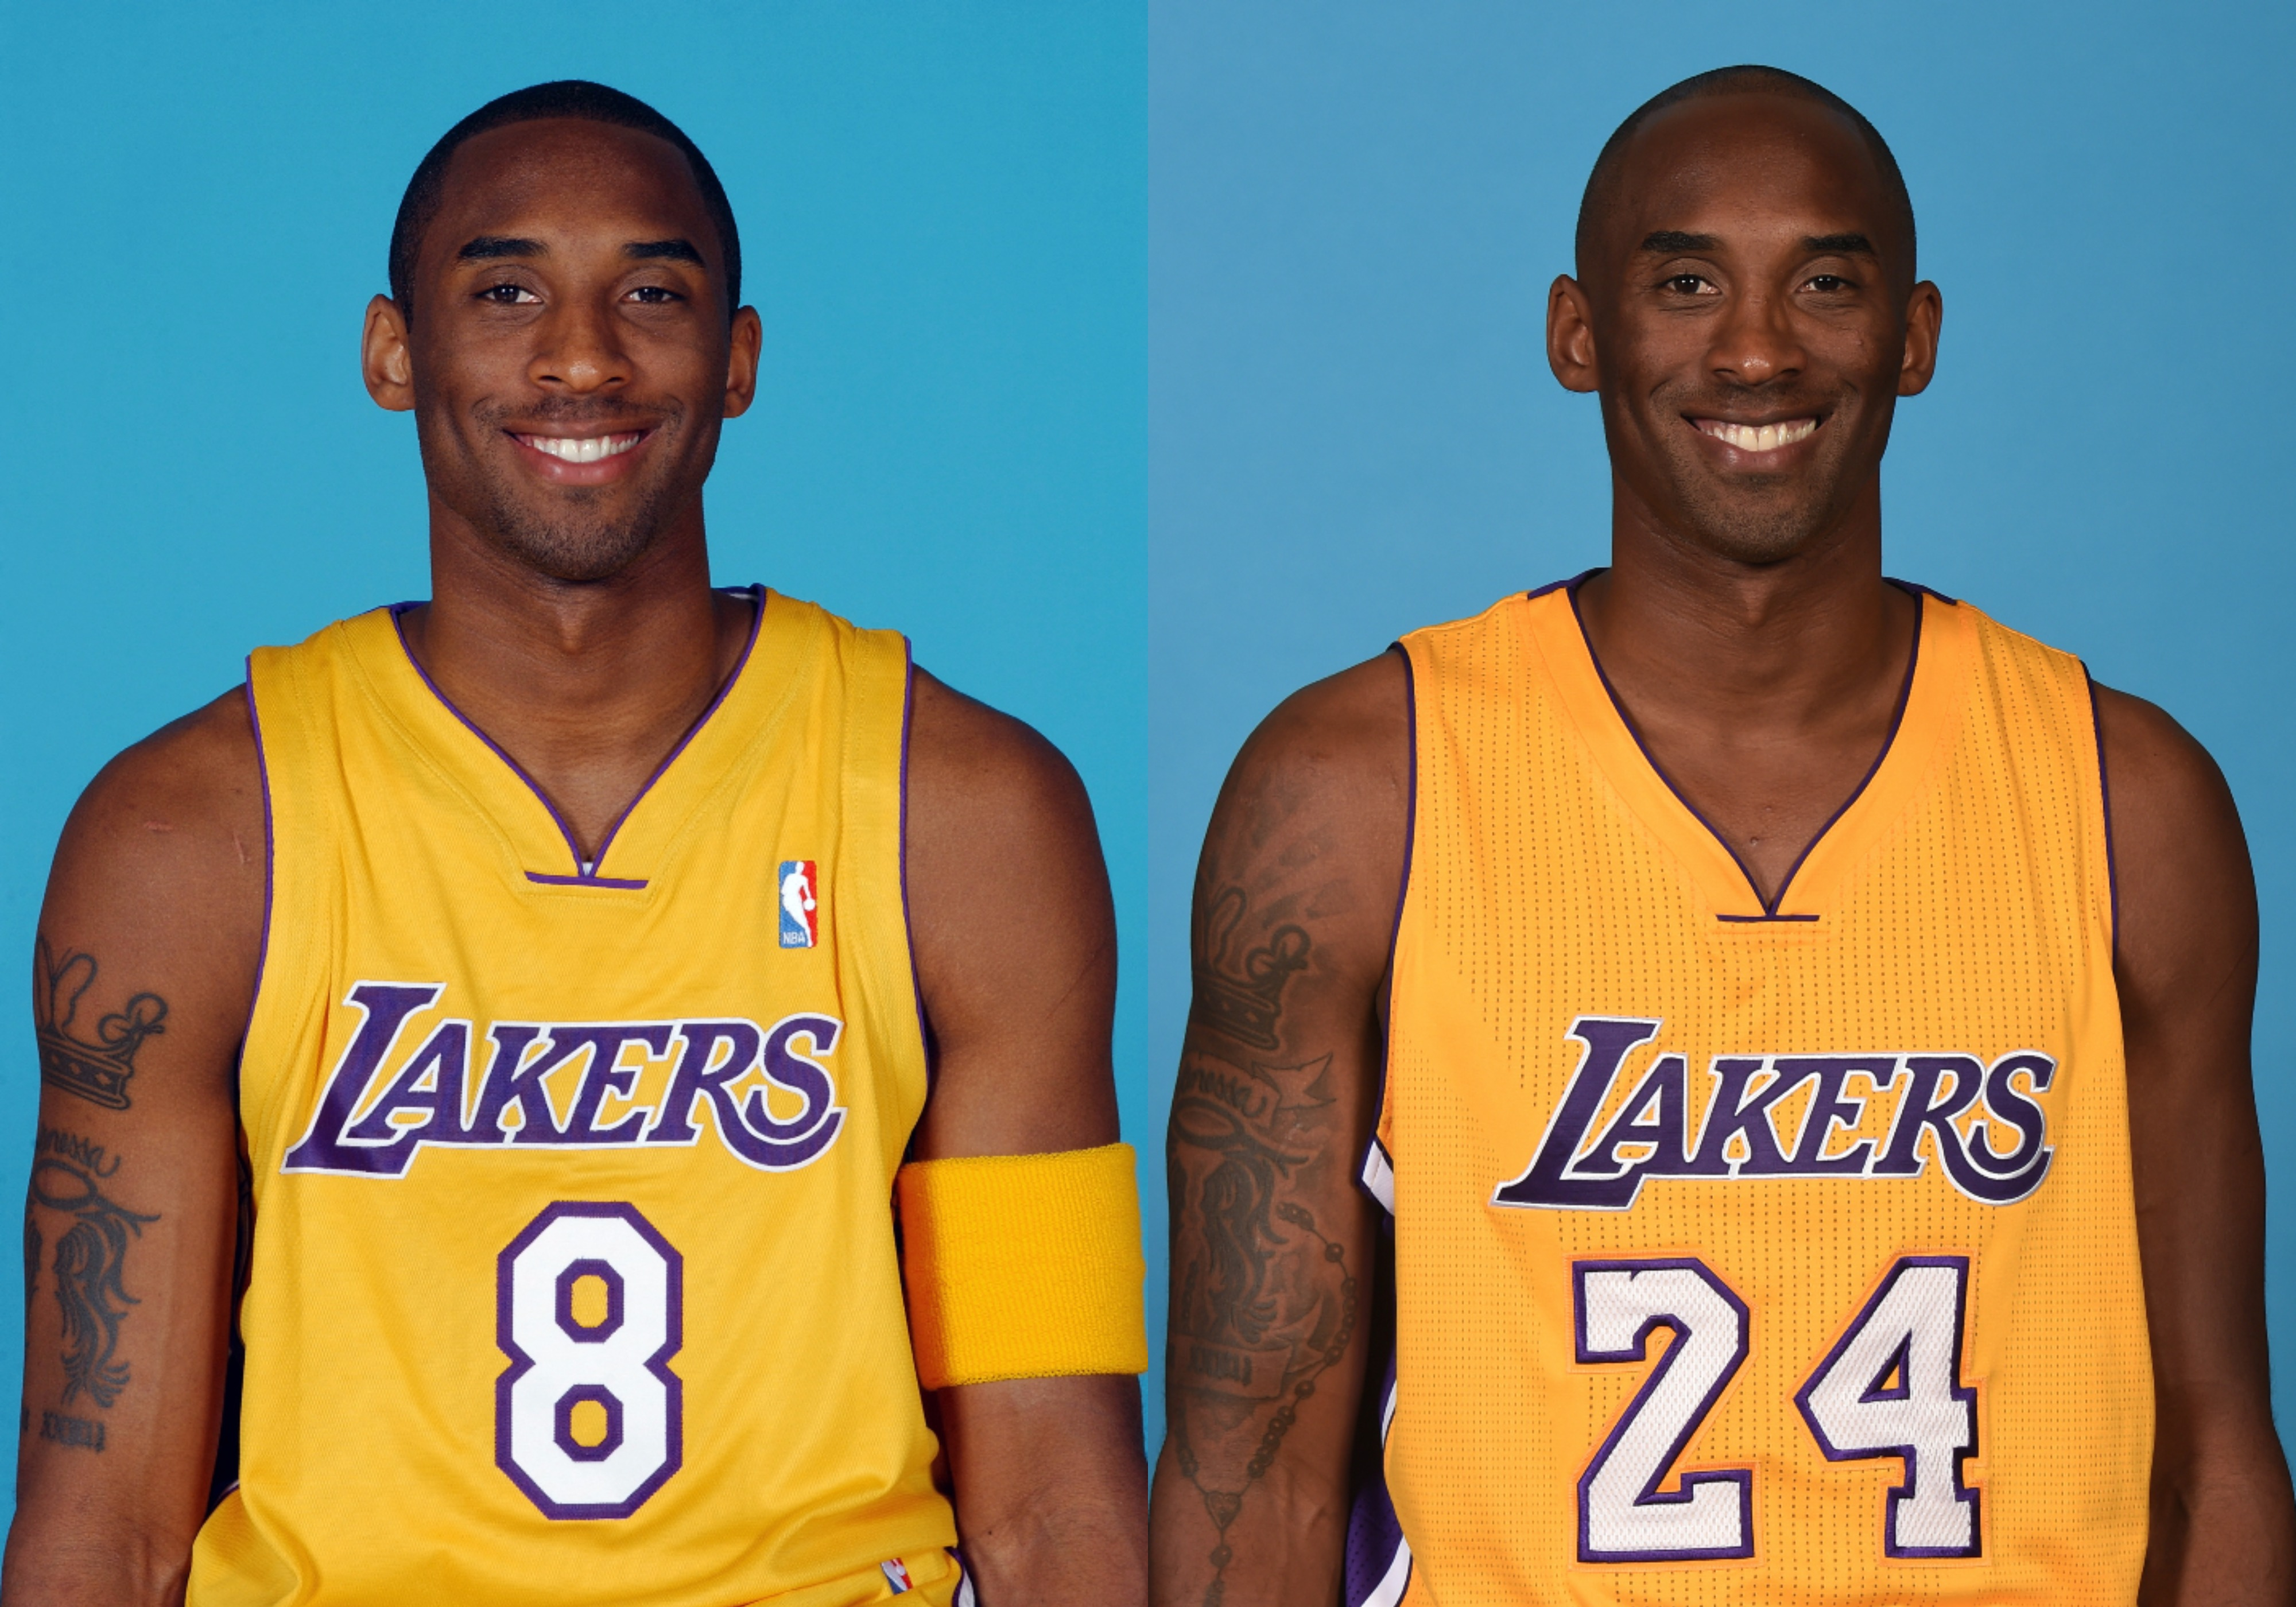 Will the Lakers retire both No. 8 and No. 24 jerseys for Kobe Bryant?